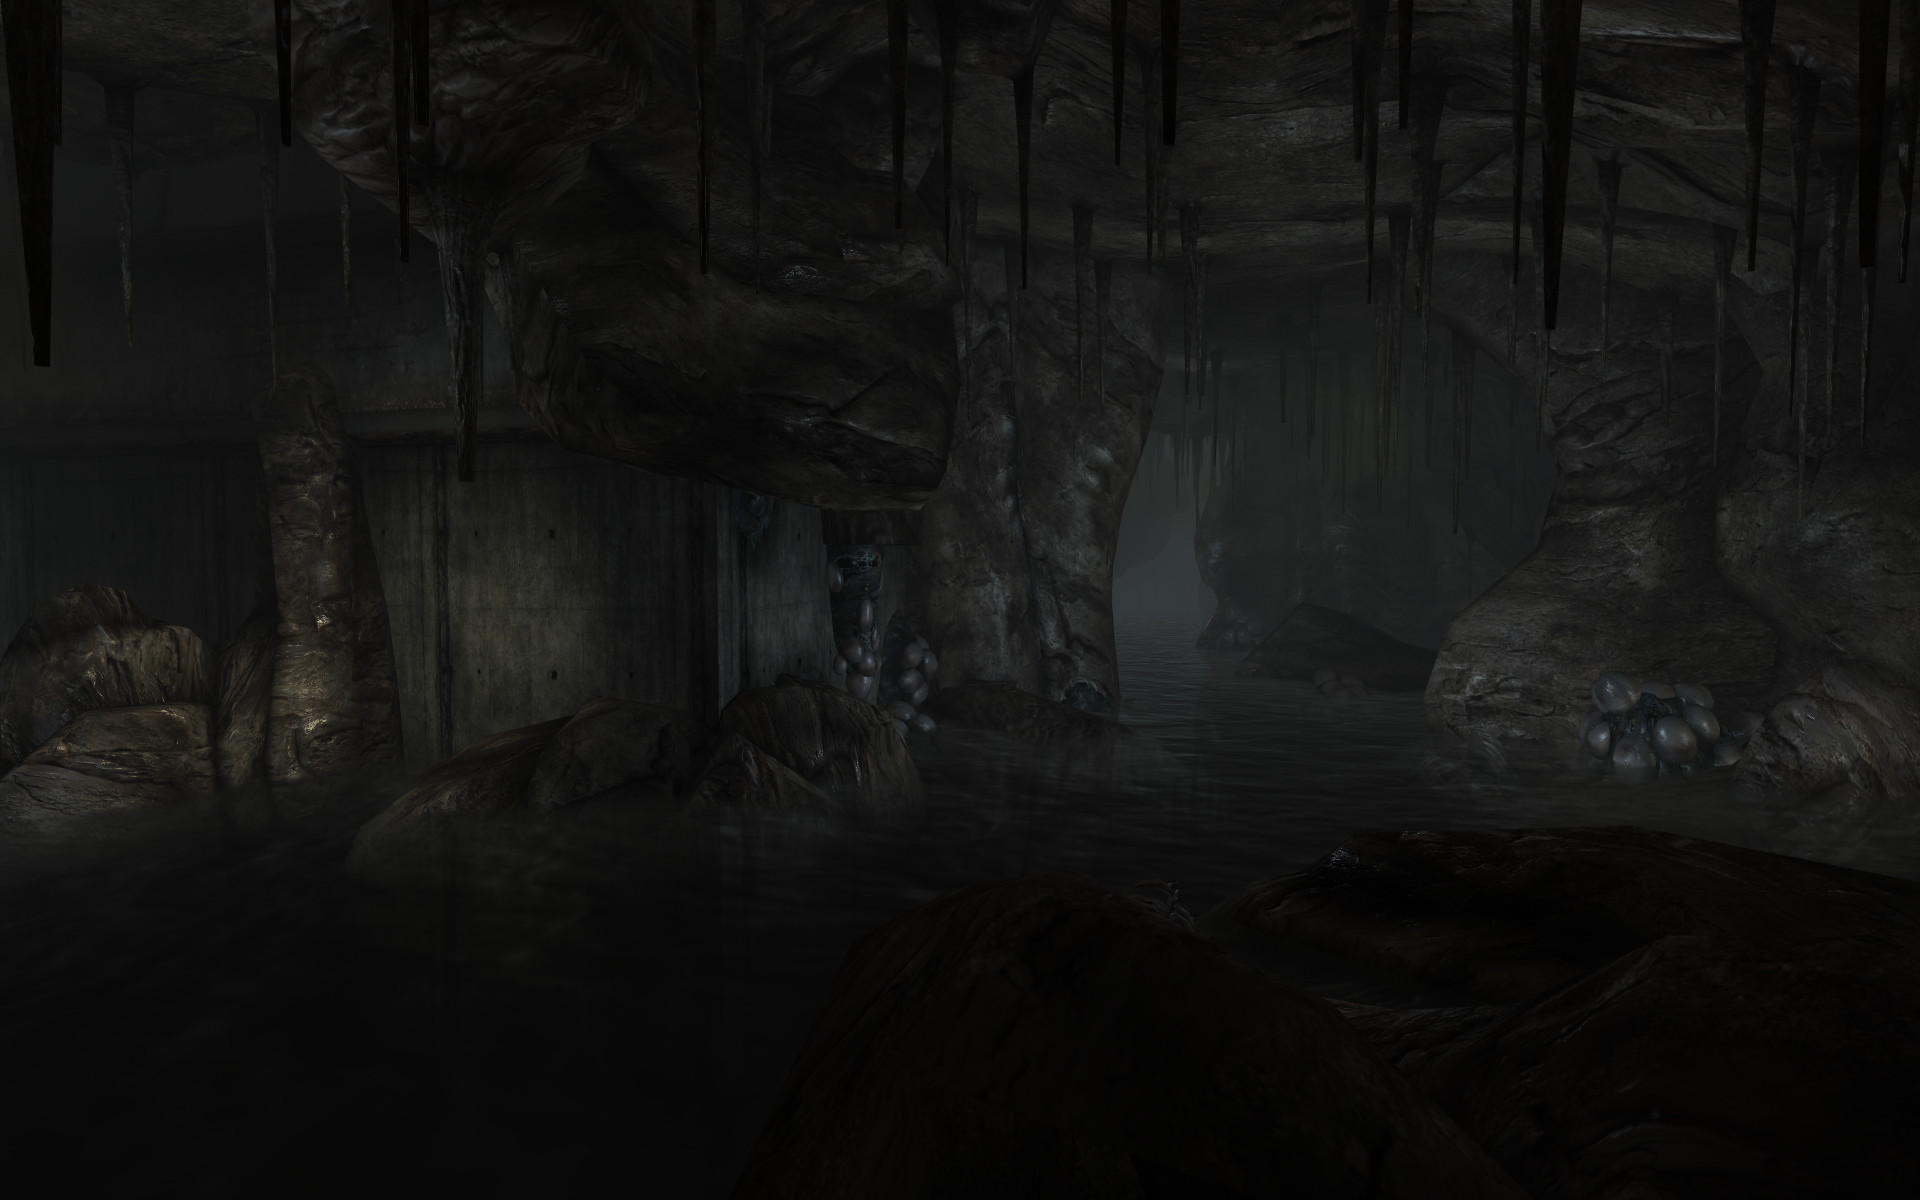 1920x1200 3d View Dark Underground Rivers Fallout 3 Wallpaper At 3d Wallpapers